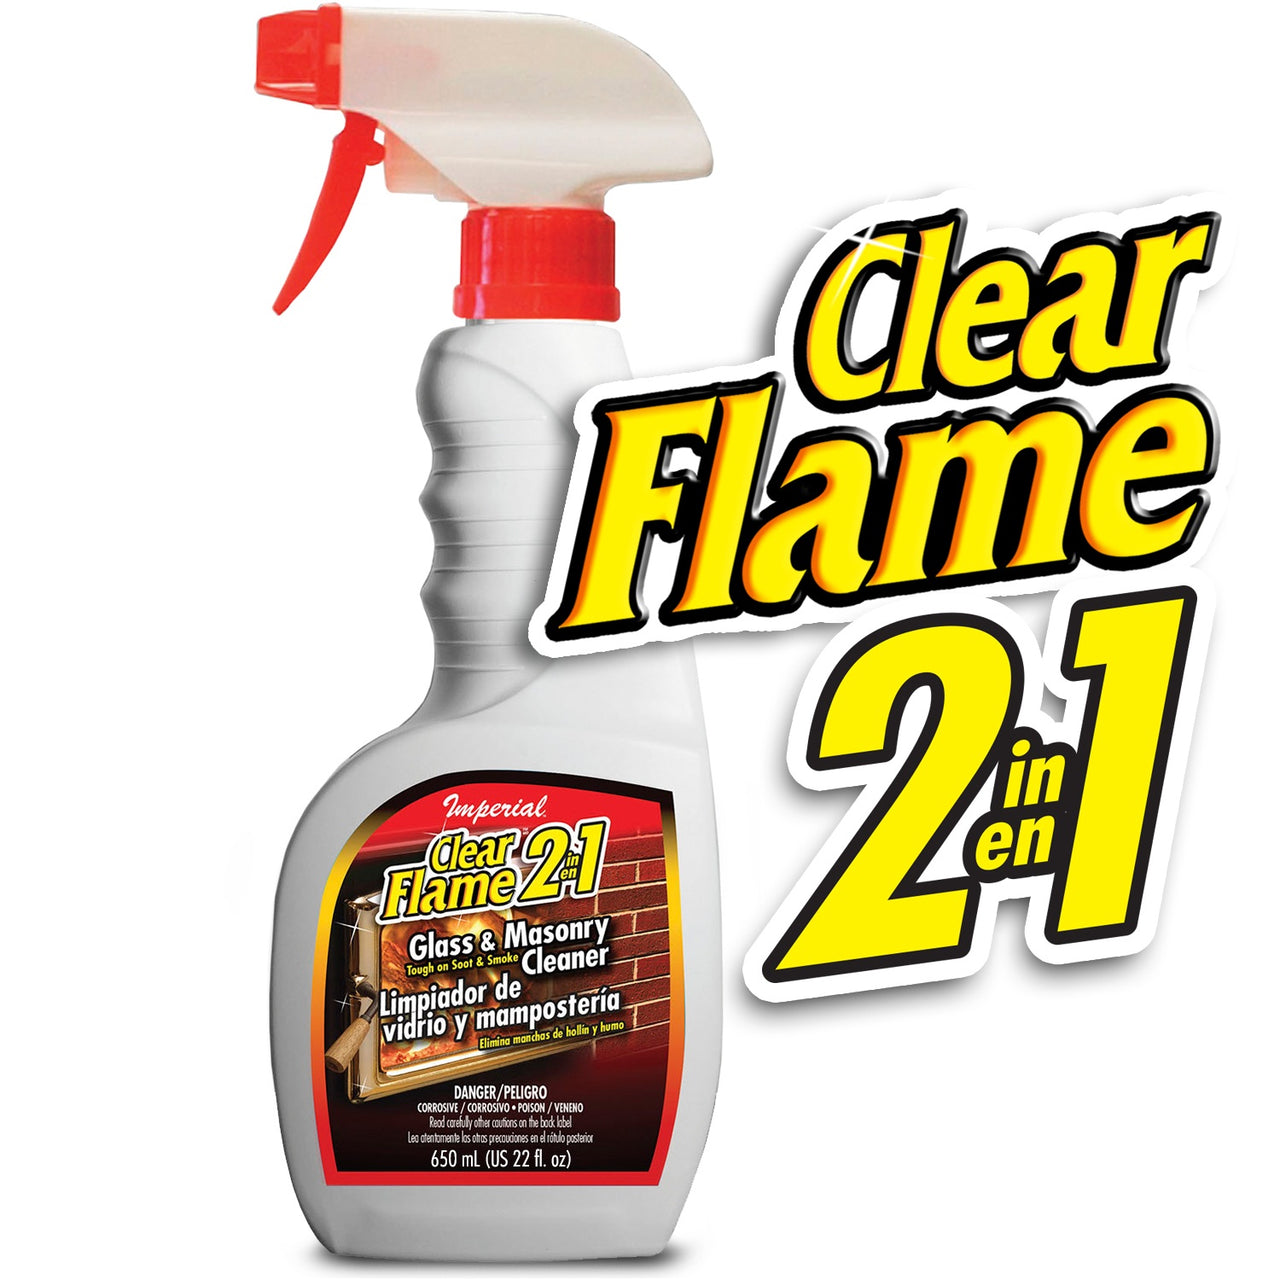 Imperial KK0047 Clear Flame 2-In-1 Glass & Masonry Cleaner, 16 Oz